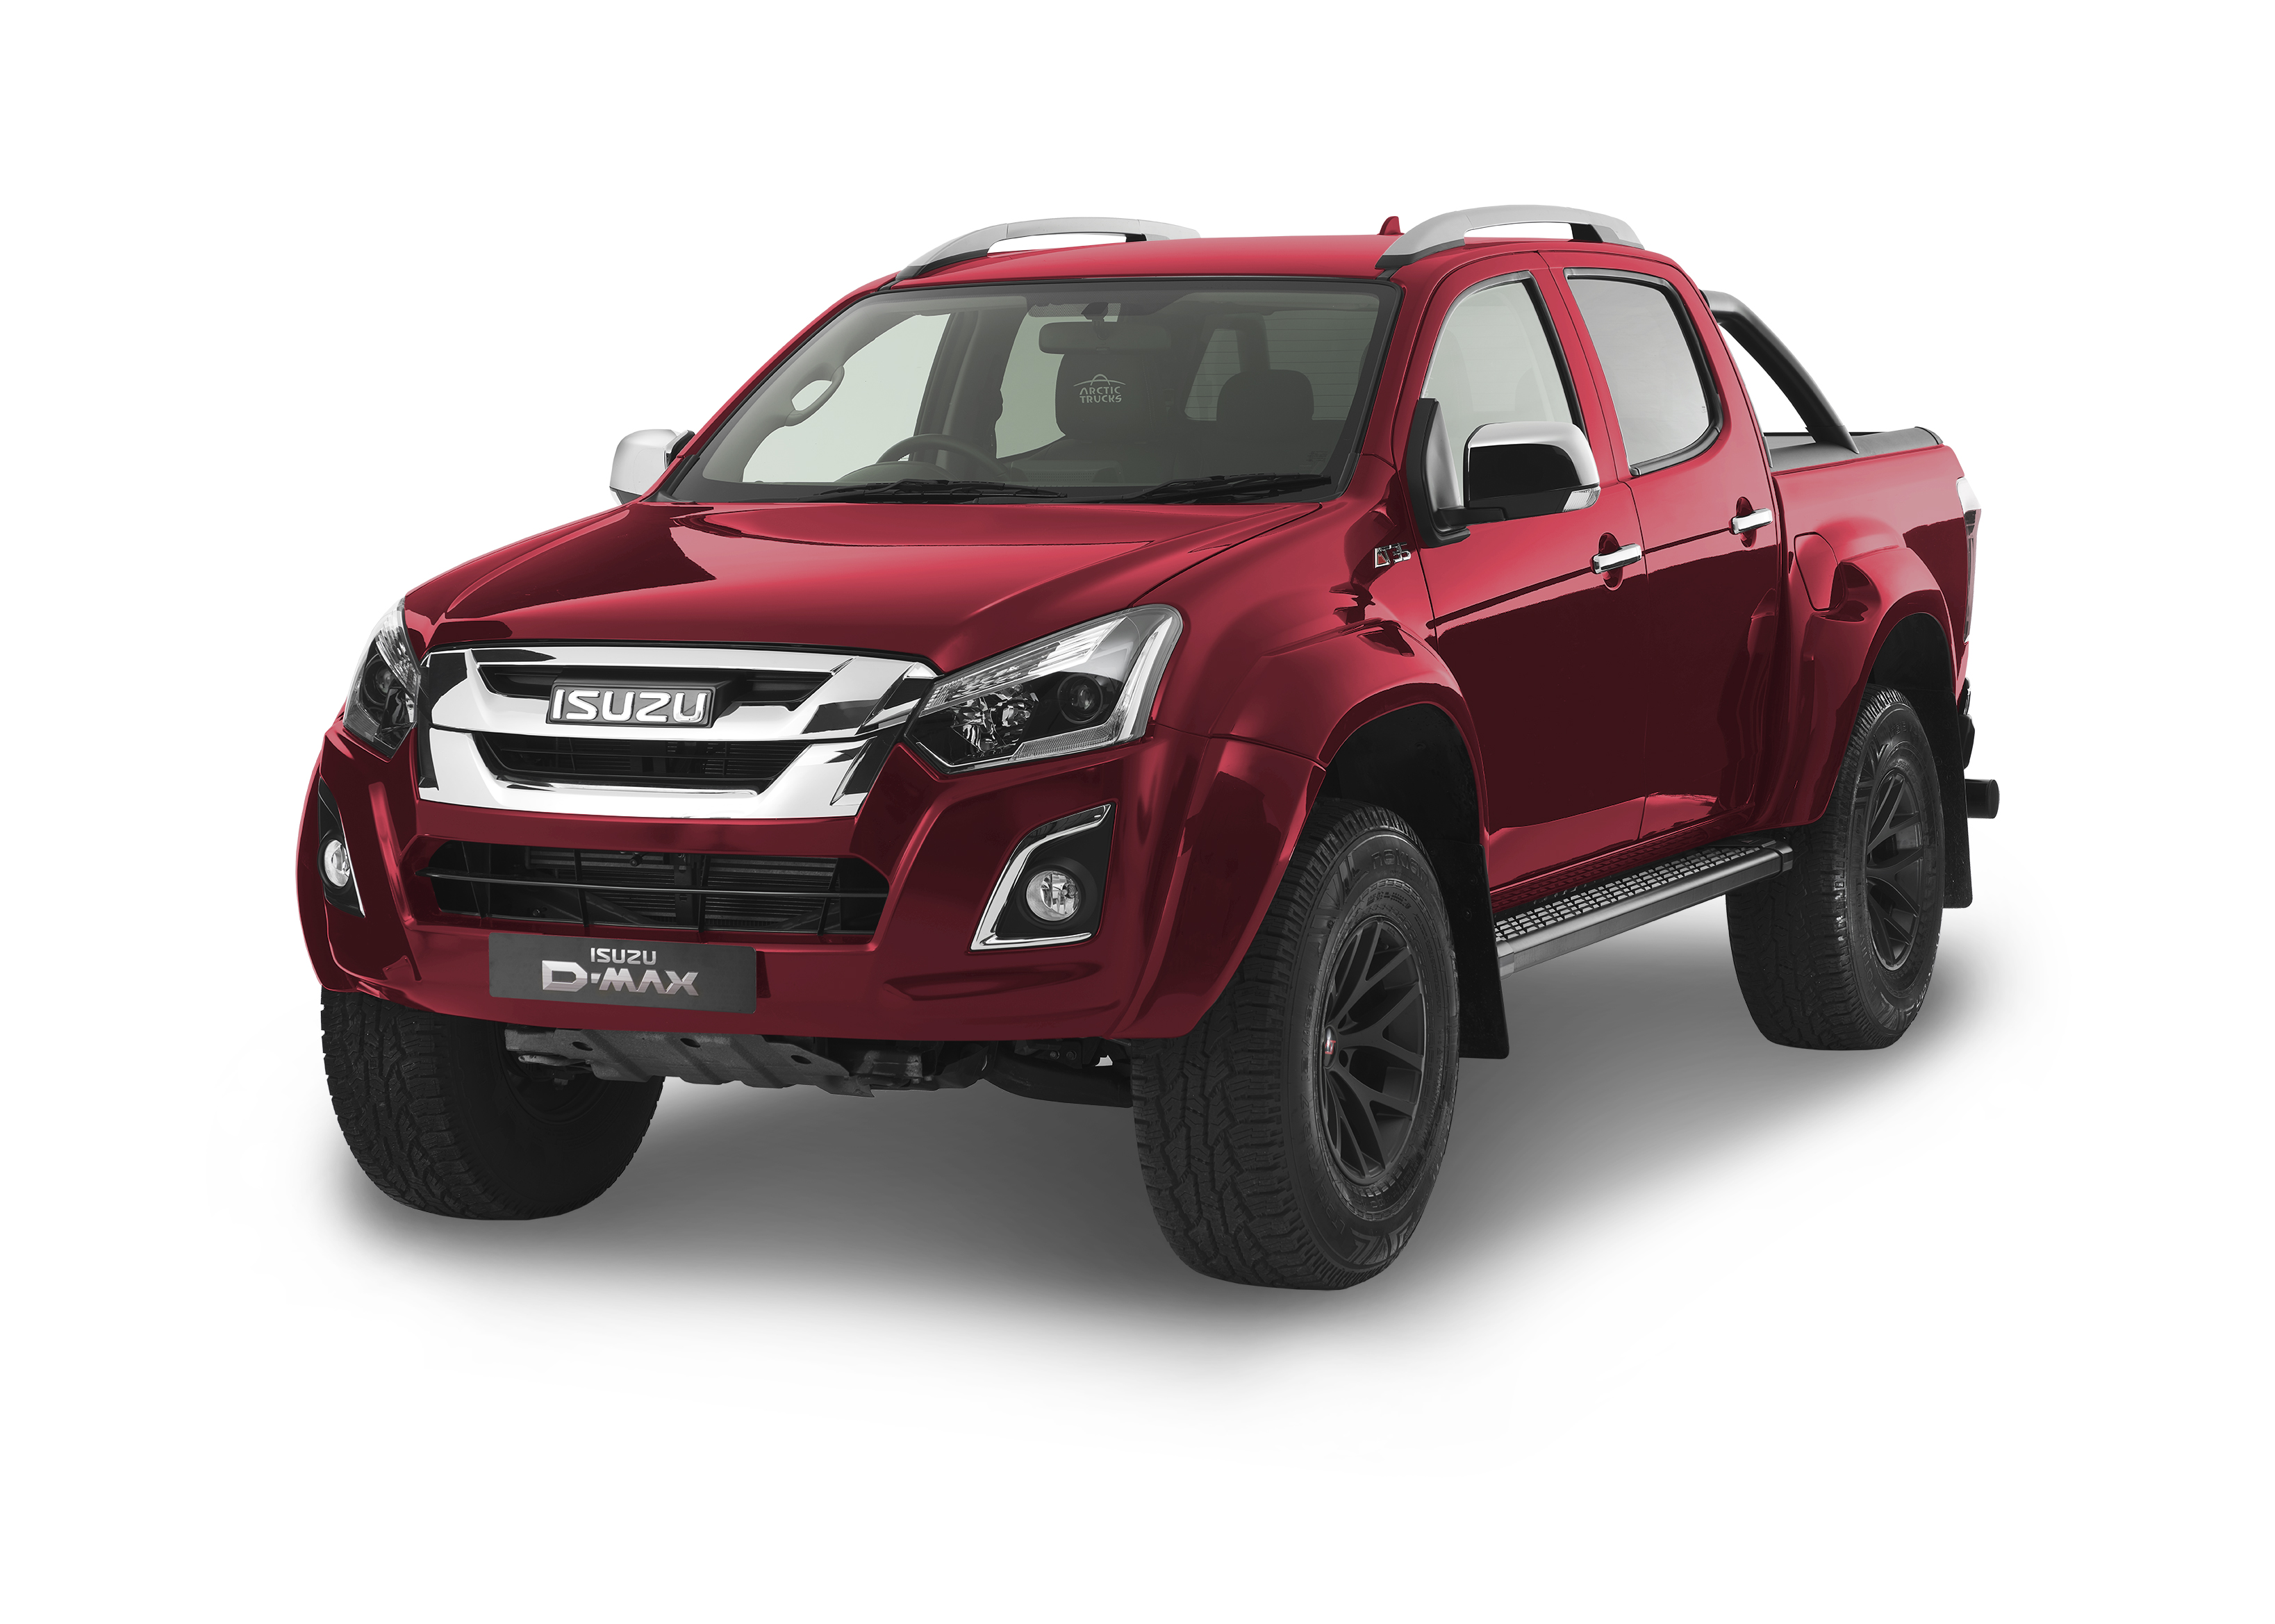 Front view of the Isuzu D-Max Arctic AT35 in red